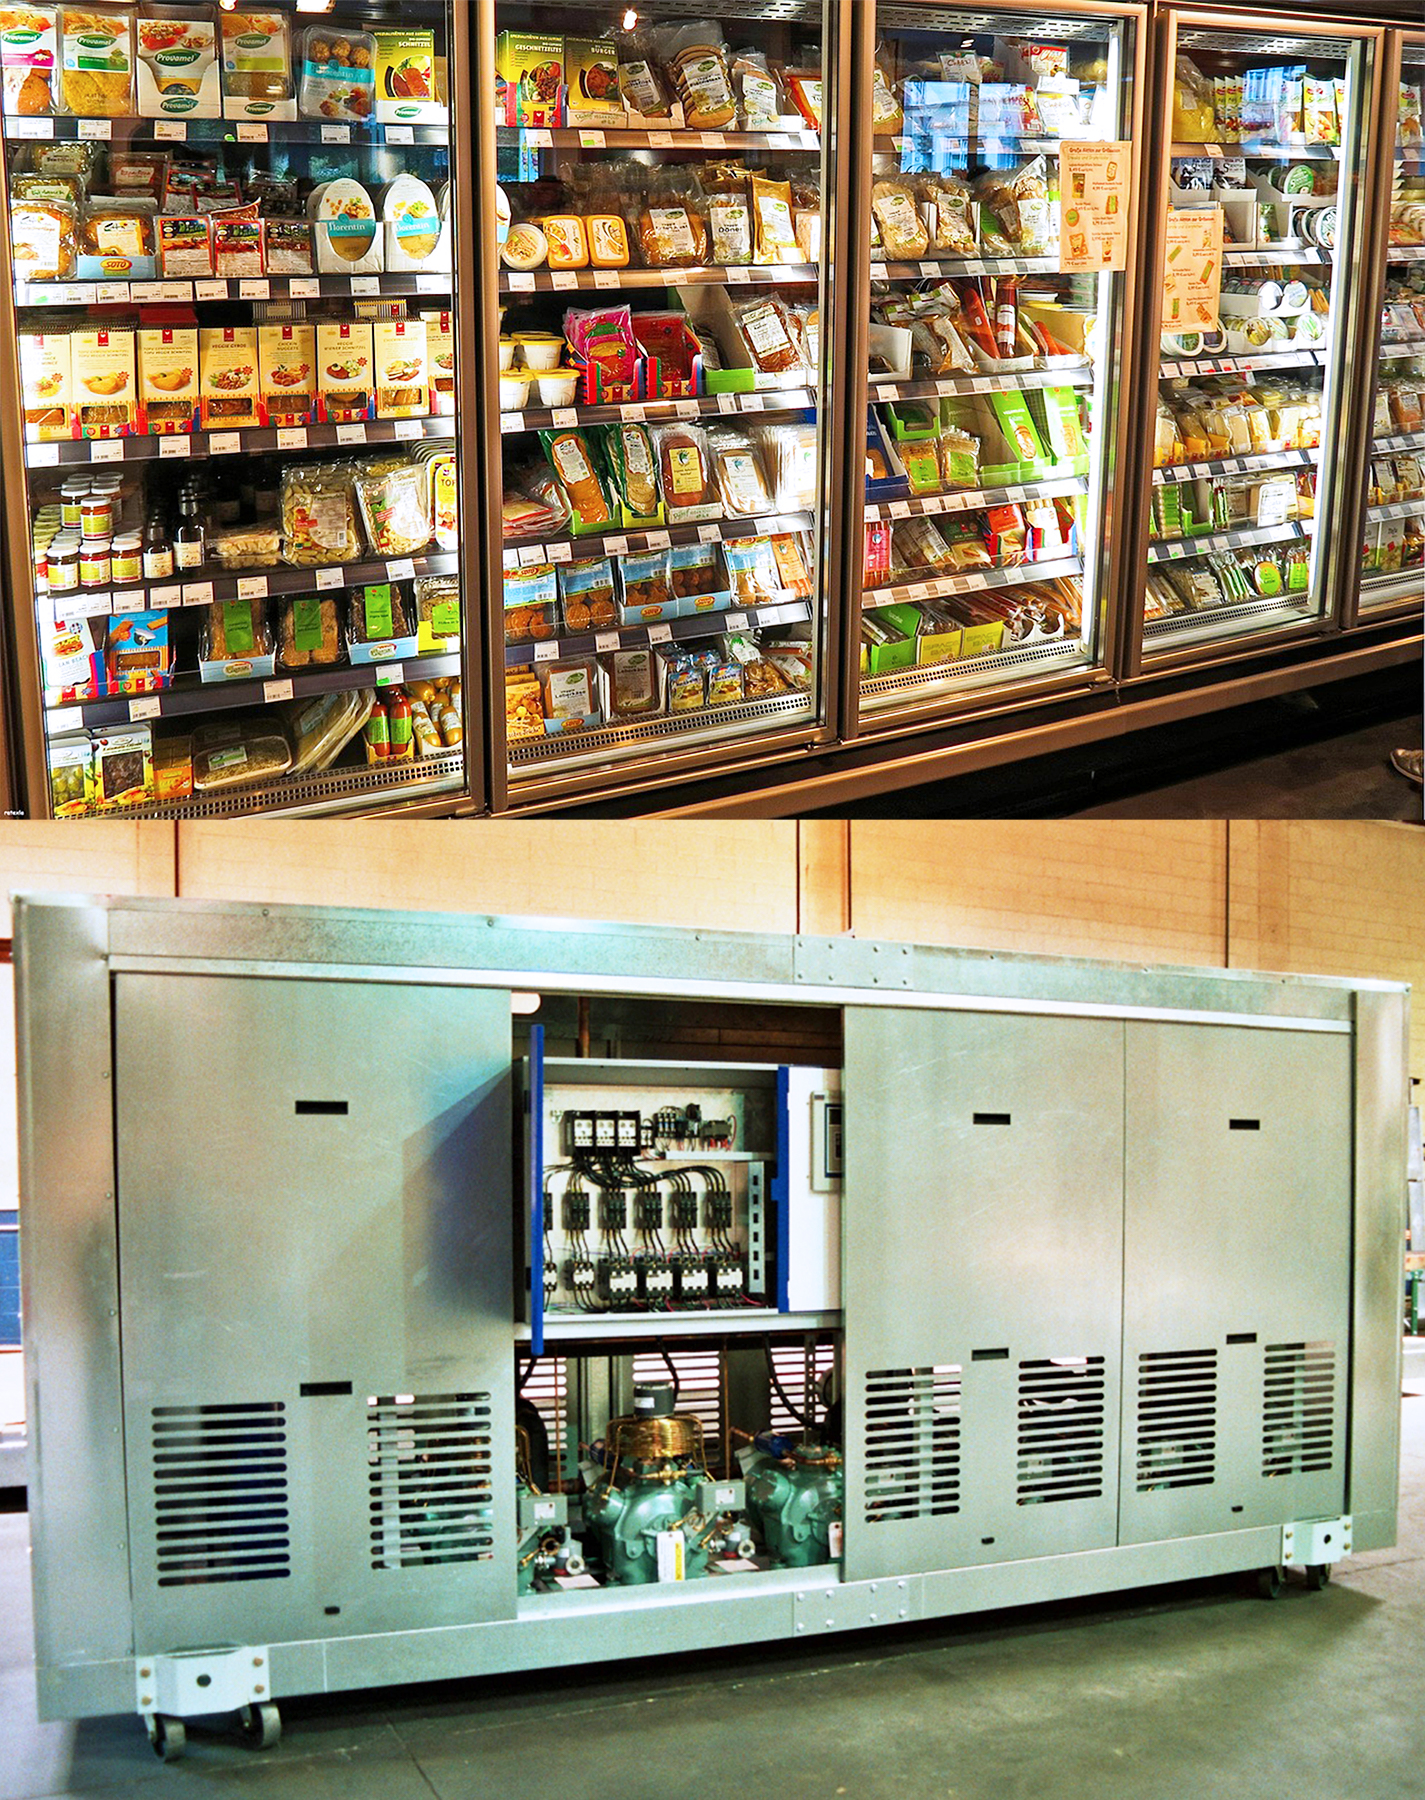 Commercial Refrigeration Repair and Maintenance